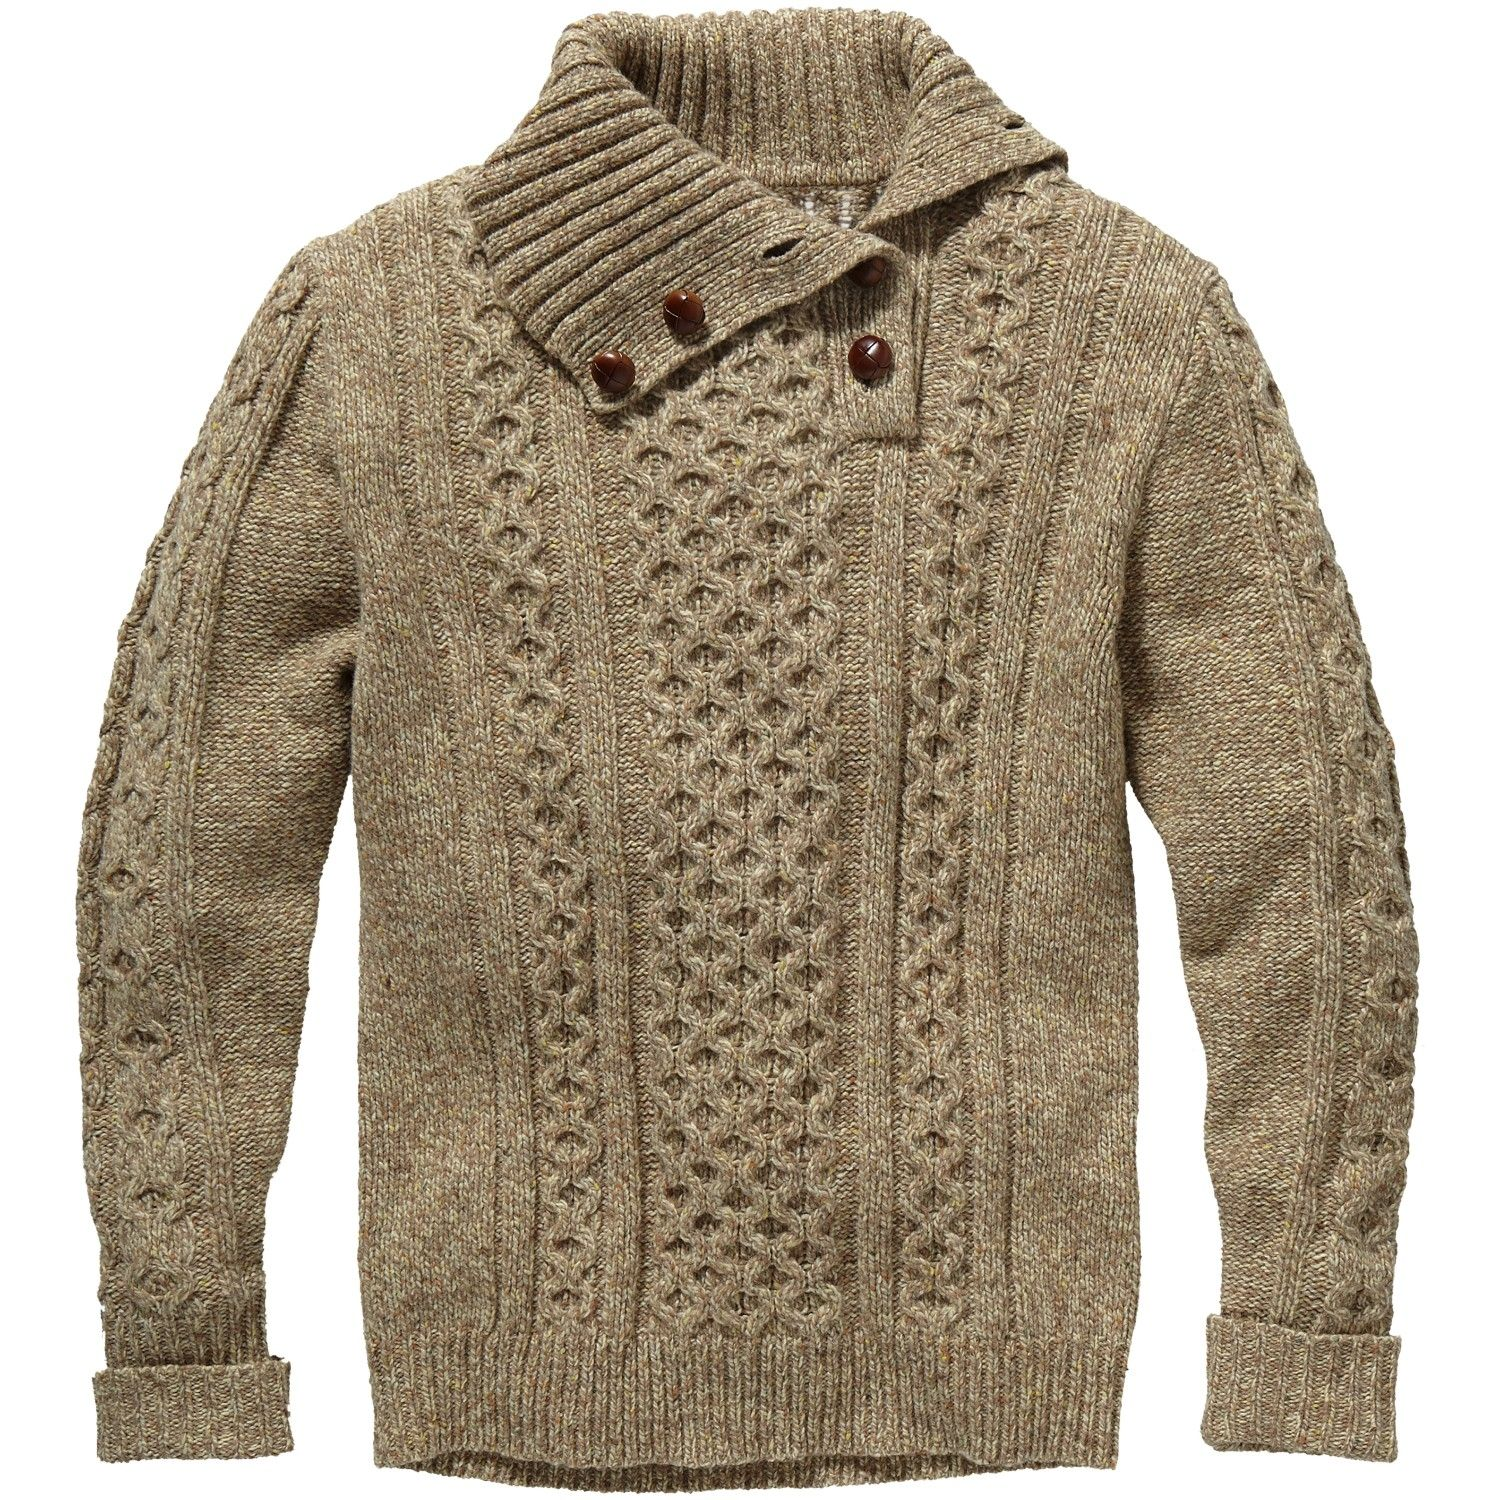 Gant Rugger Granpa 3/2 Roll Sweater. I know, I pin so many sweaters... But I can't help myself!